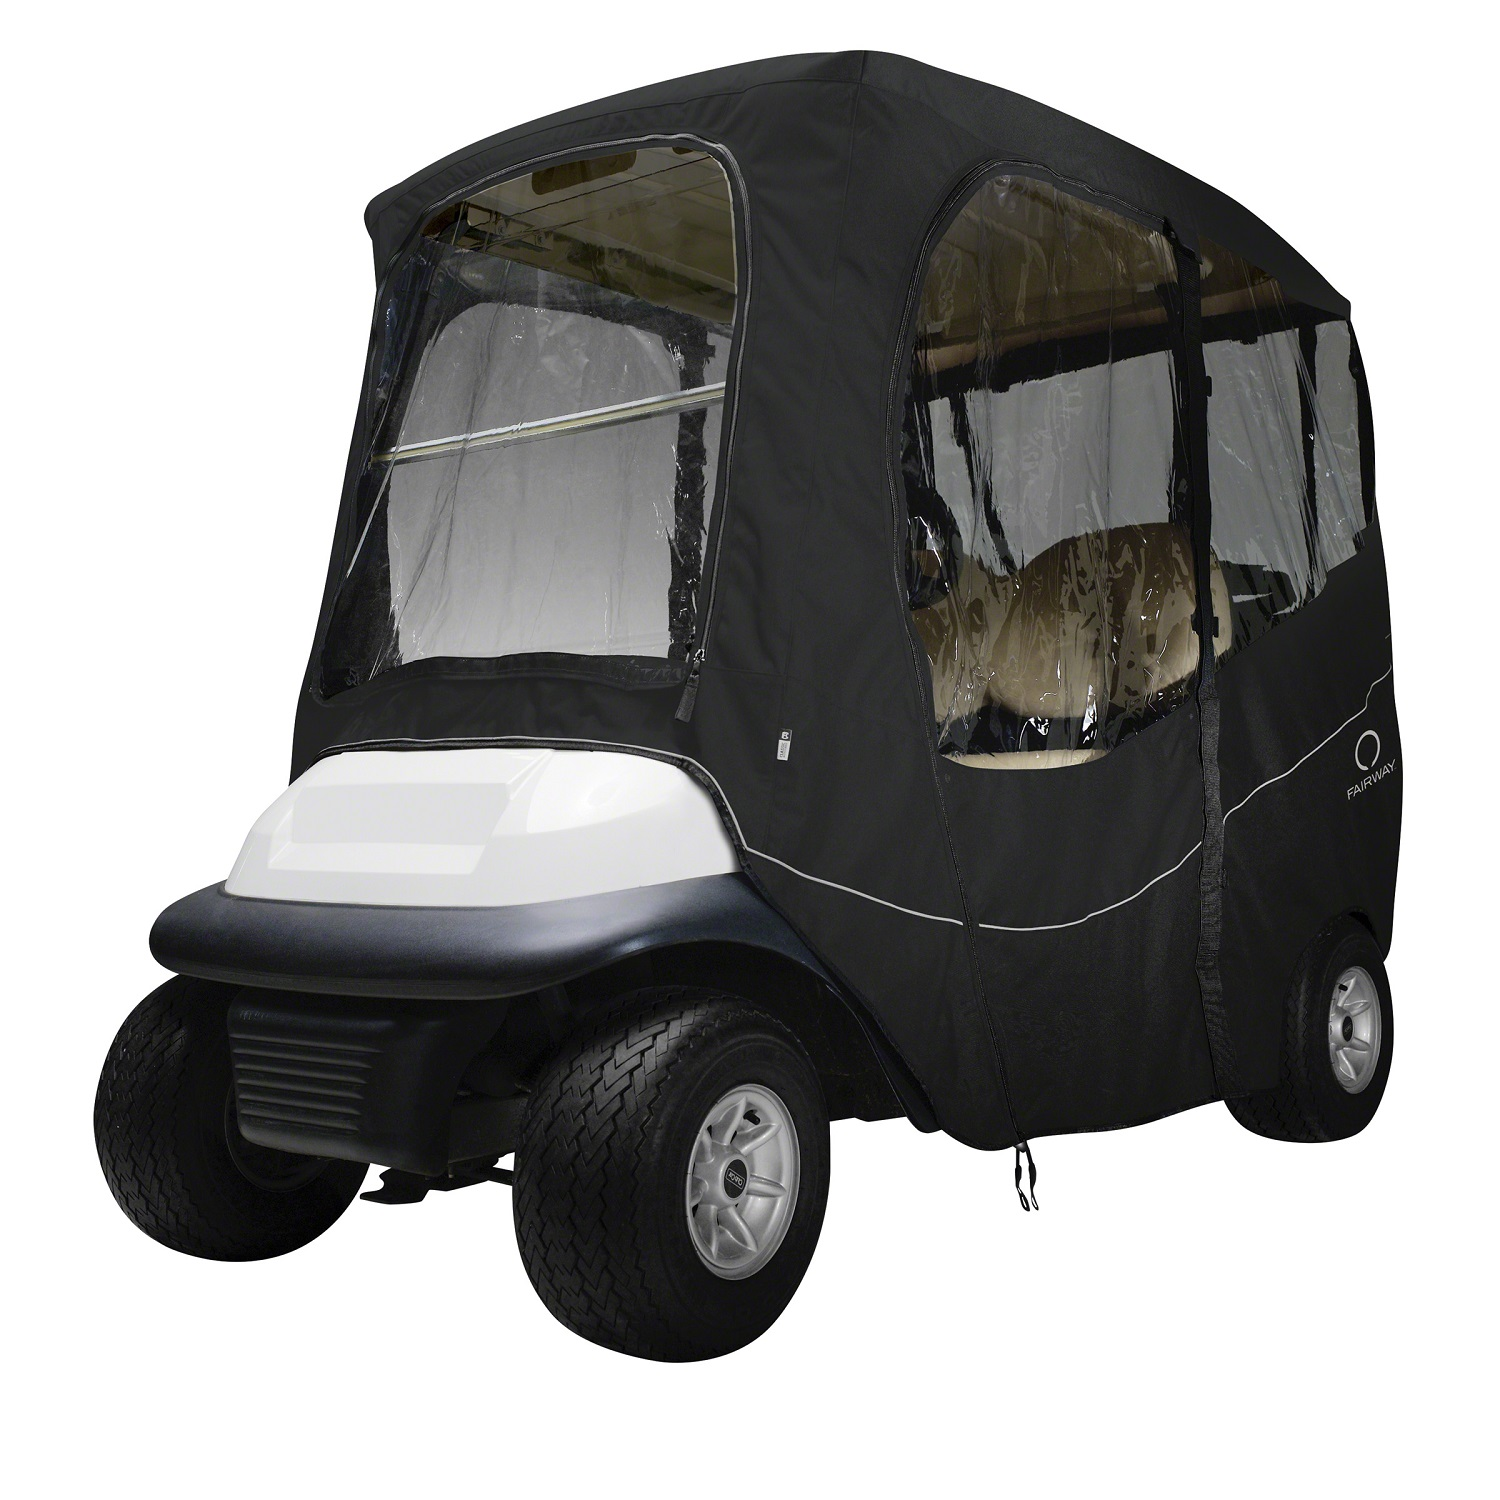 Fairway Golf Cart Deluxe Enclosure Short Roof - Black